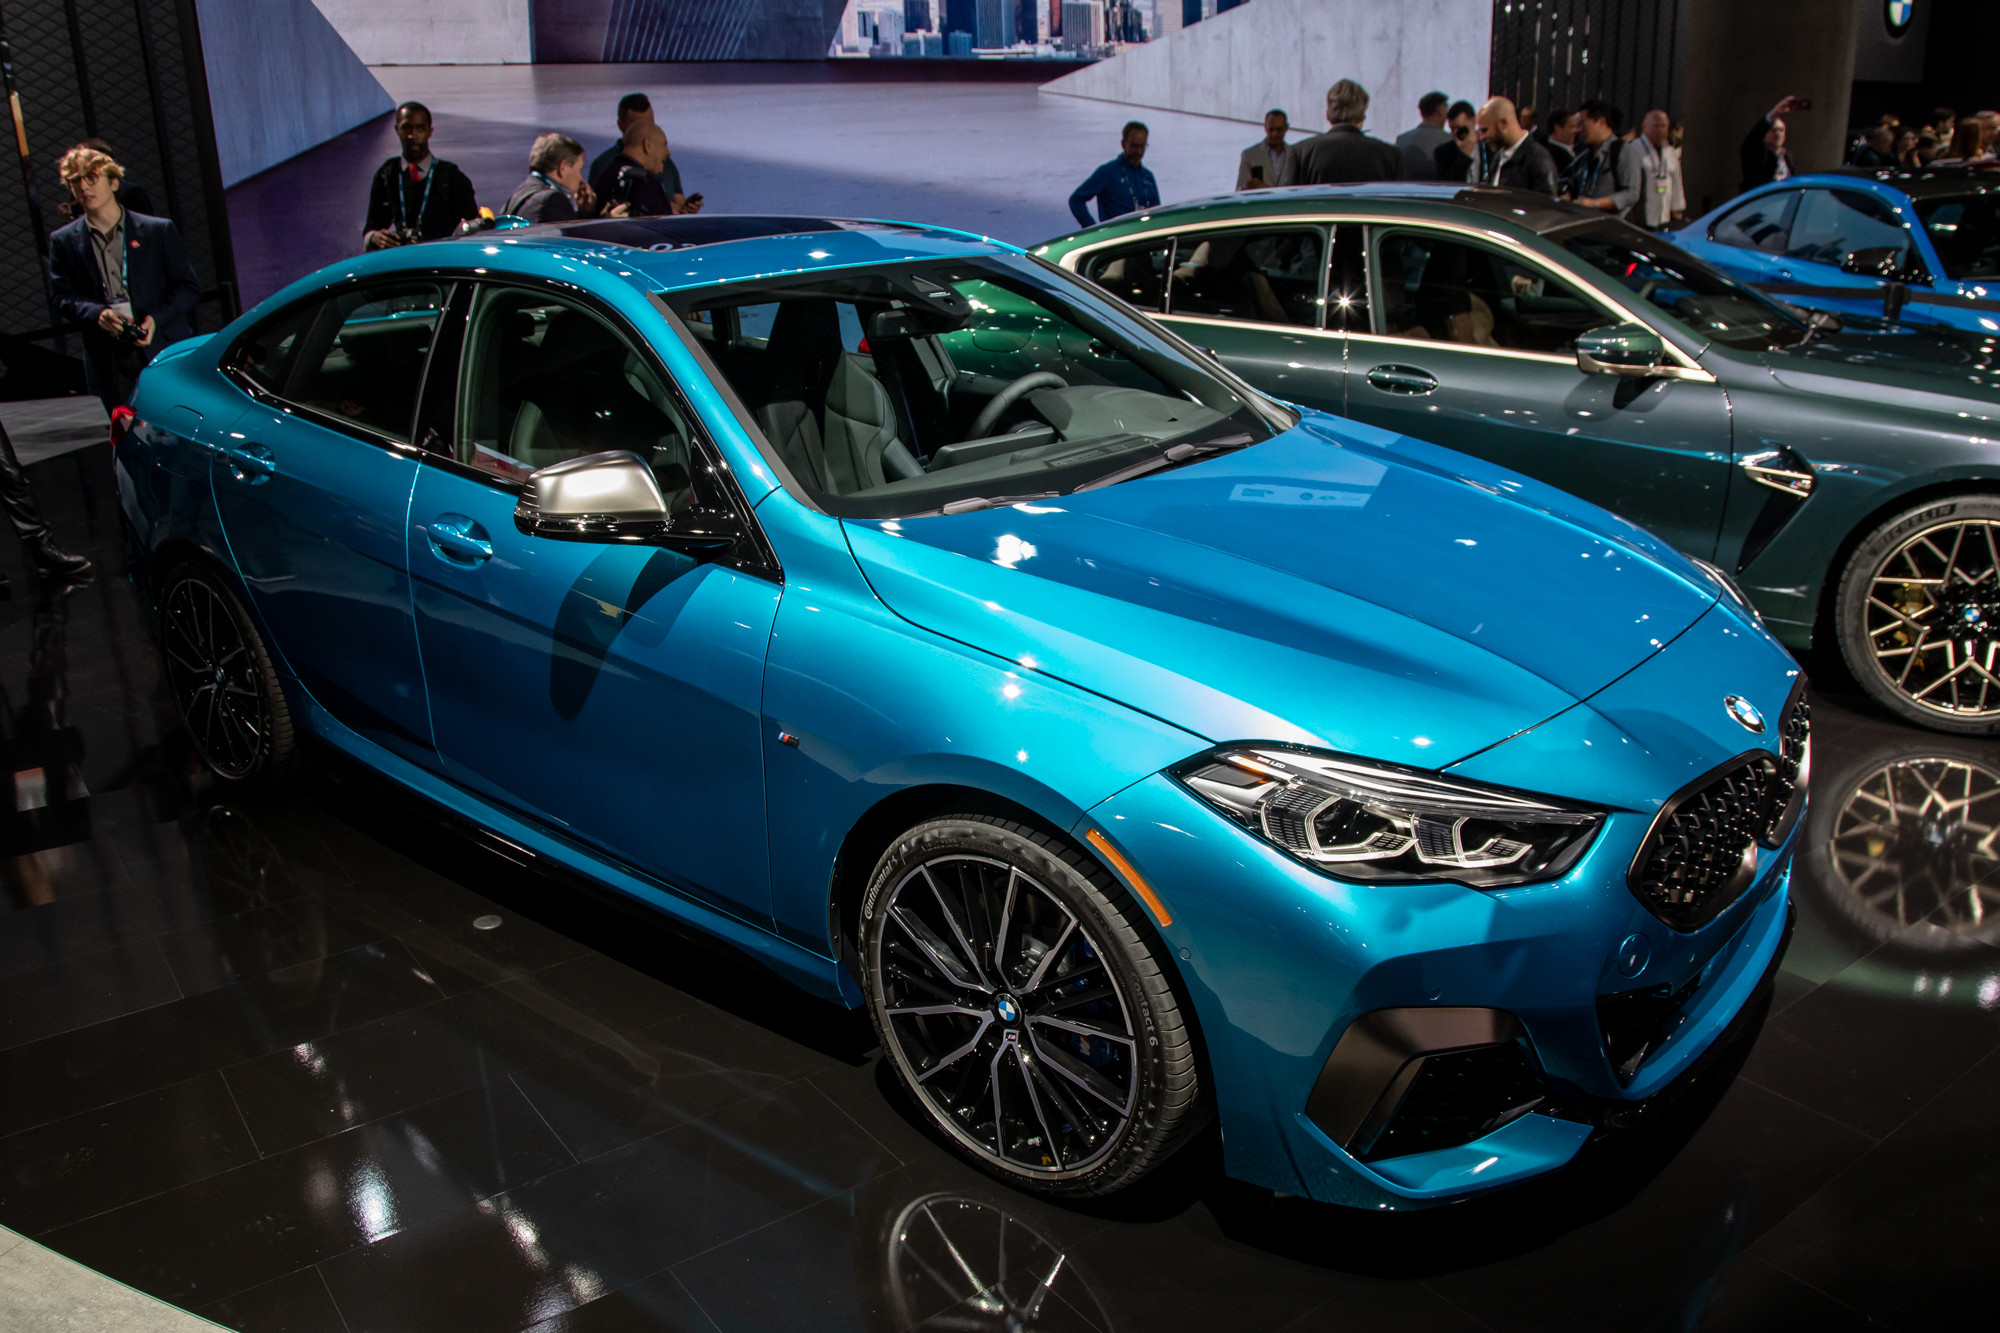 bmw-m235i-gran-coupe-2020-cl-01-exterior-blue.jpg